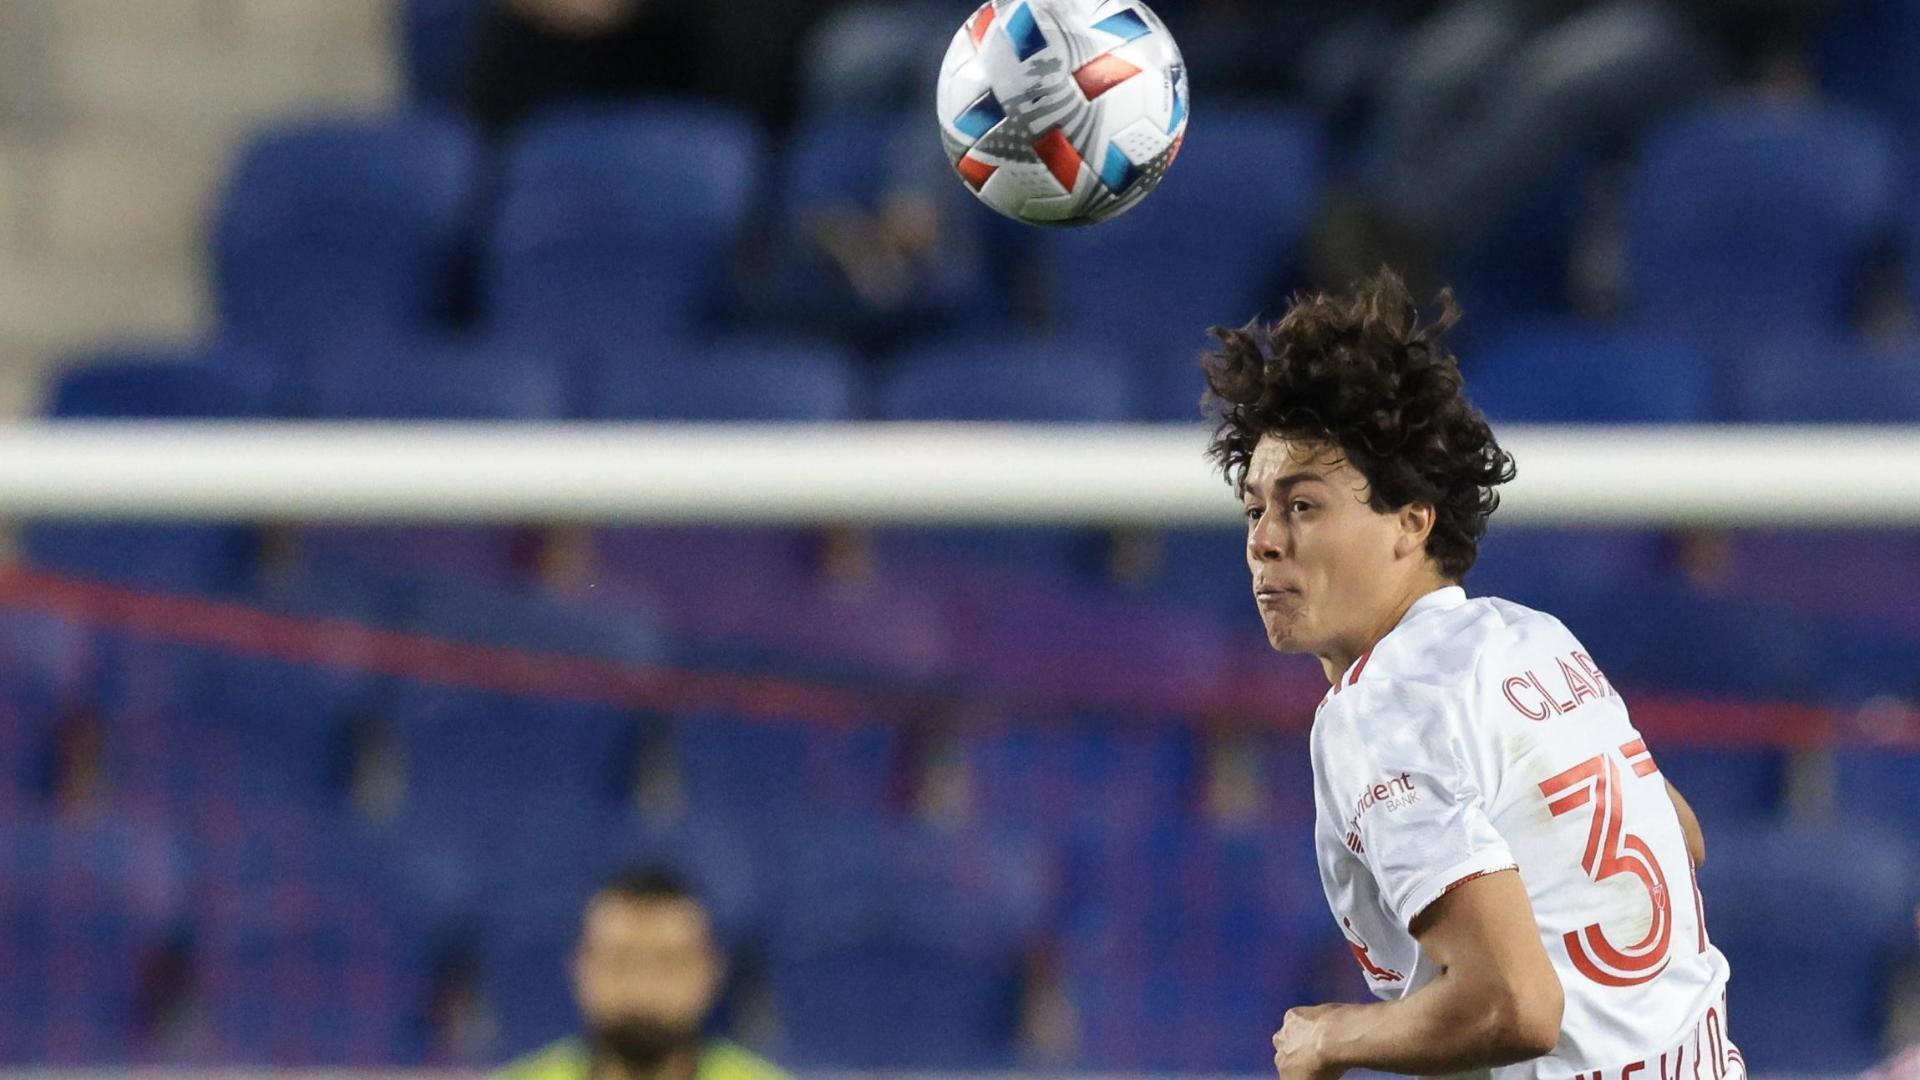 17-year-old Caden Clark scores another amazing goal for NY Red Bulls